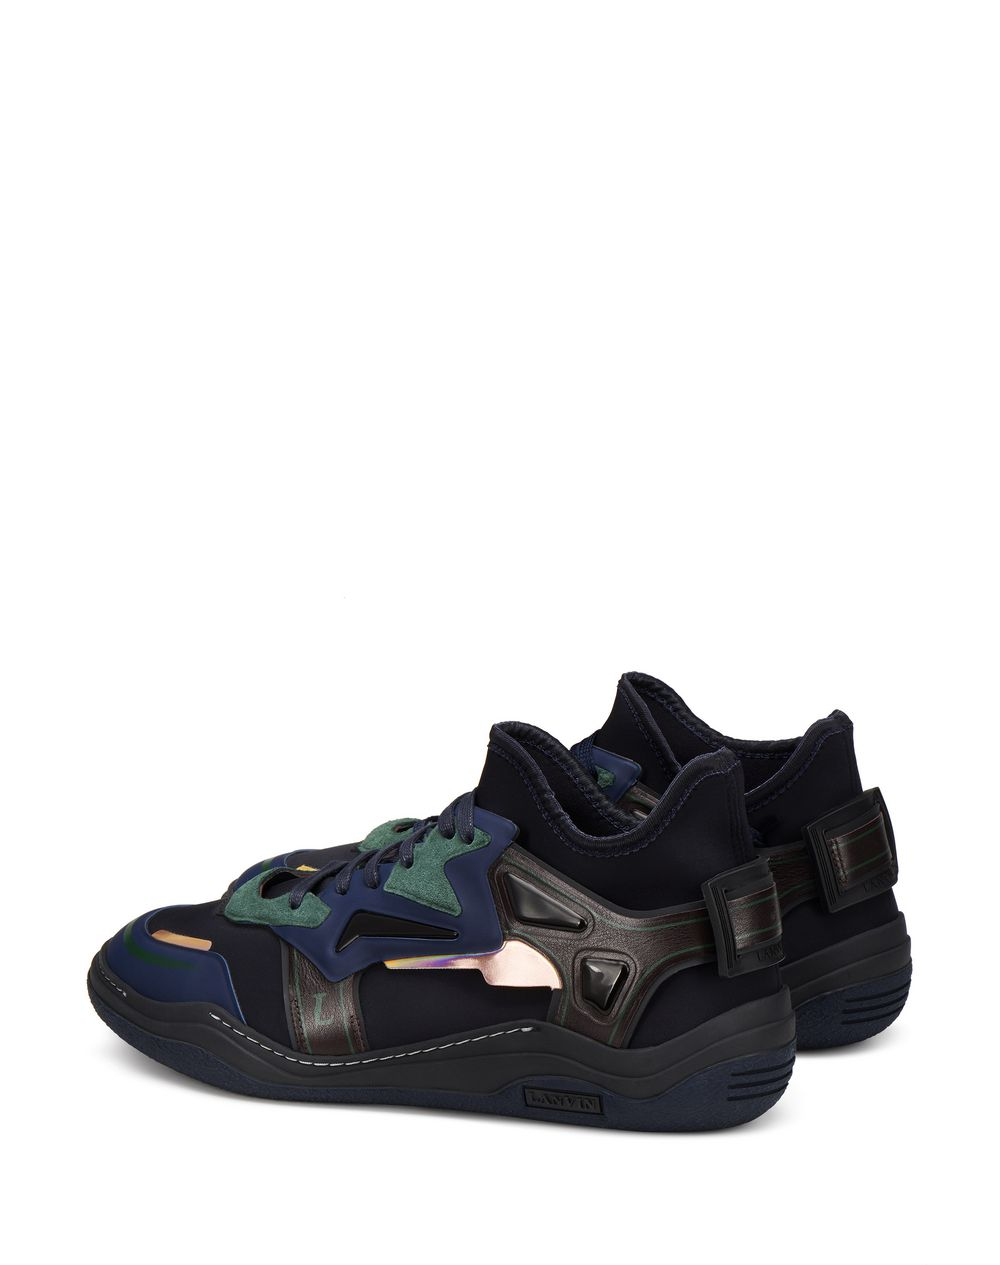 MID-TOP NEOPRENE DIVING SNEAKER - Lanvin